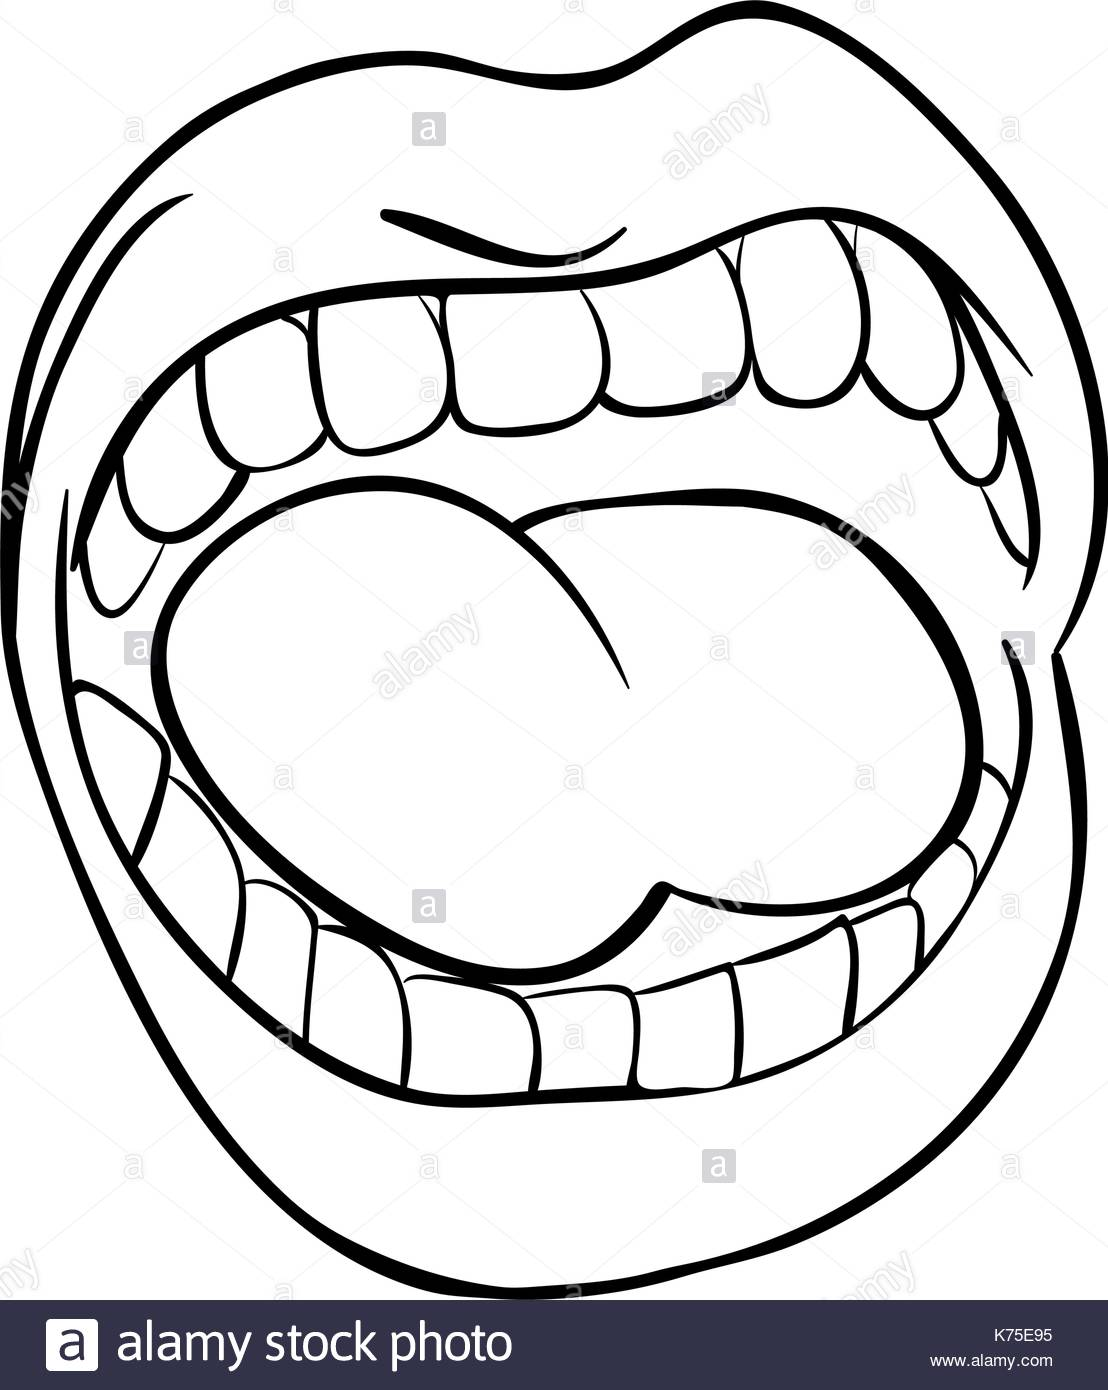 1108x1390 shouting lips with teeth and tongue cartoon outline vector symbol